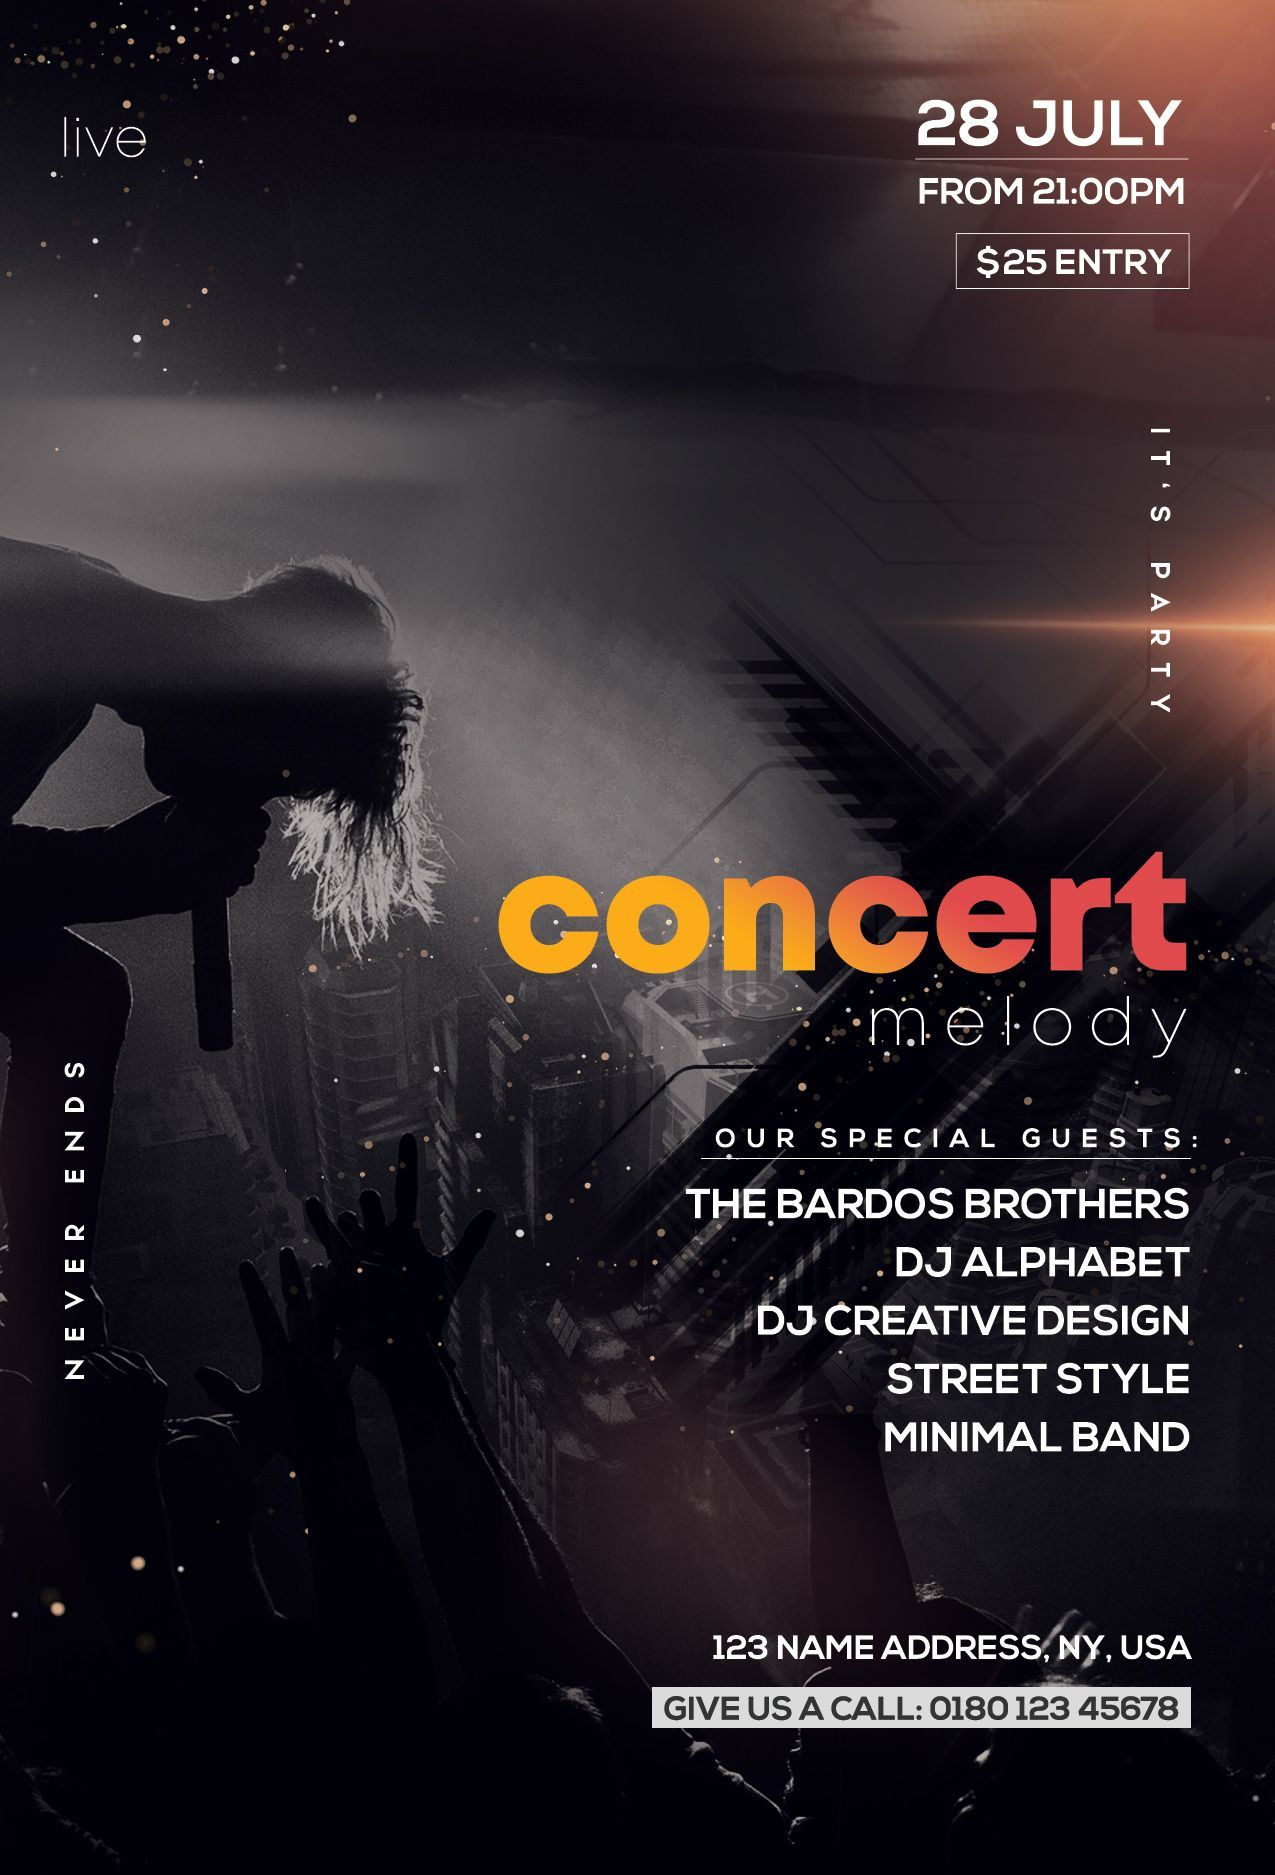 003 Exceptional Free Concert Poster Template Concept  Word Classical MusicFull